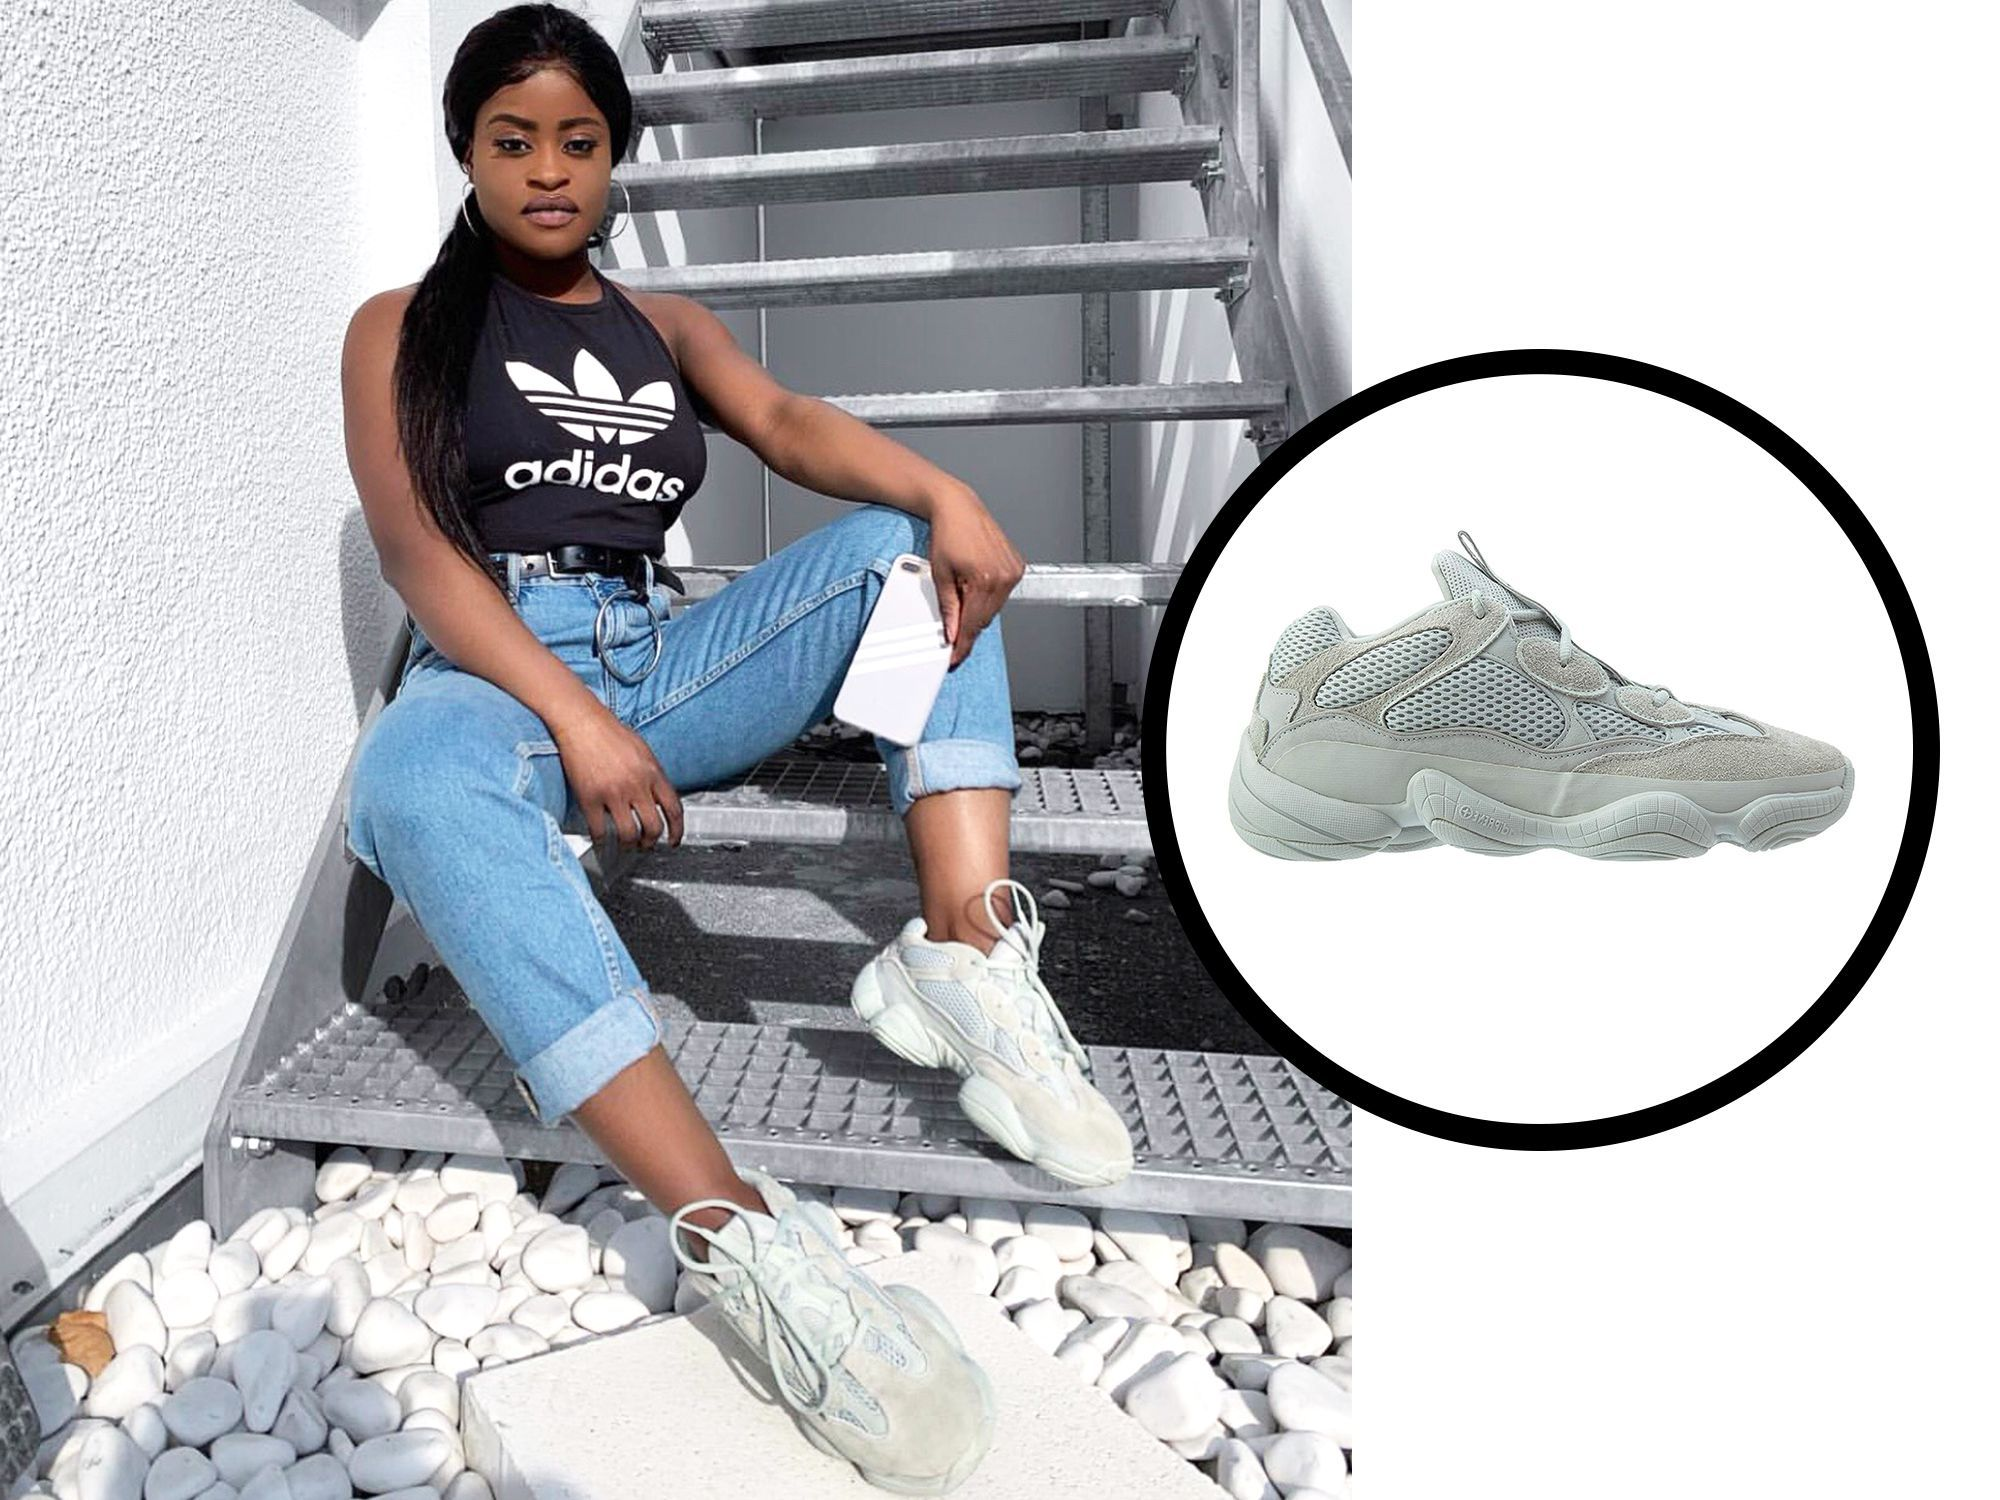 The 19 Hottest Sneakers to Buy Right Now, According to Your